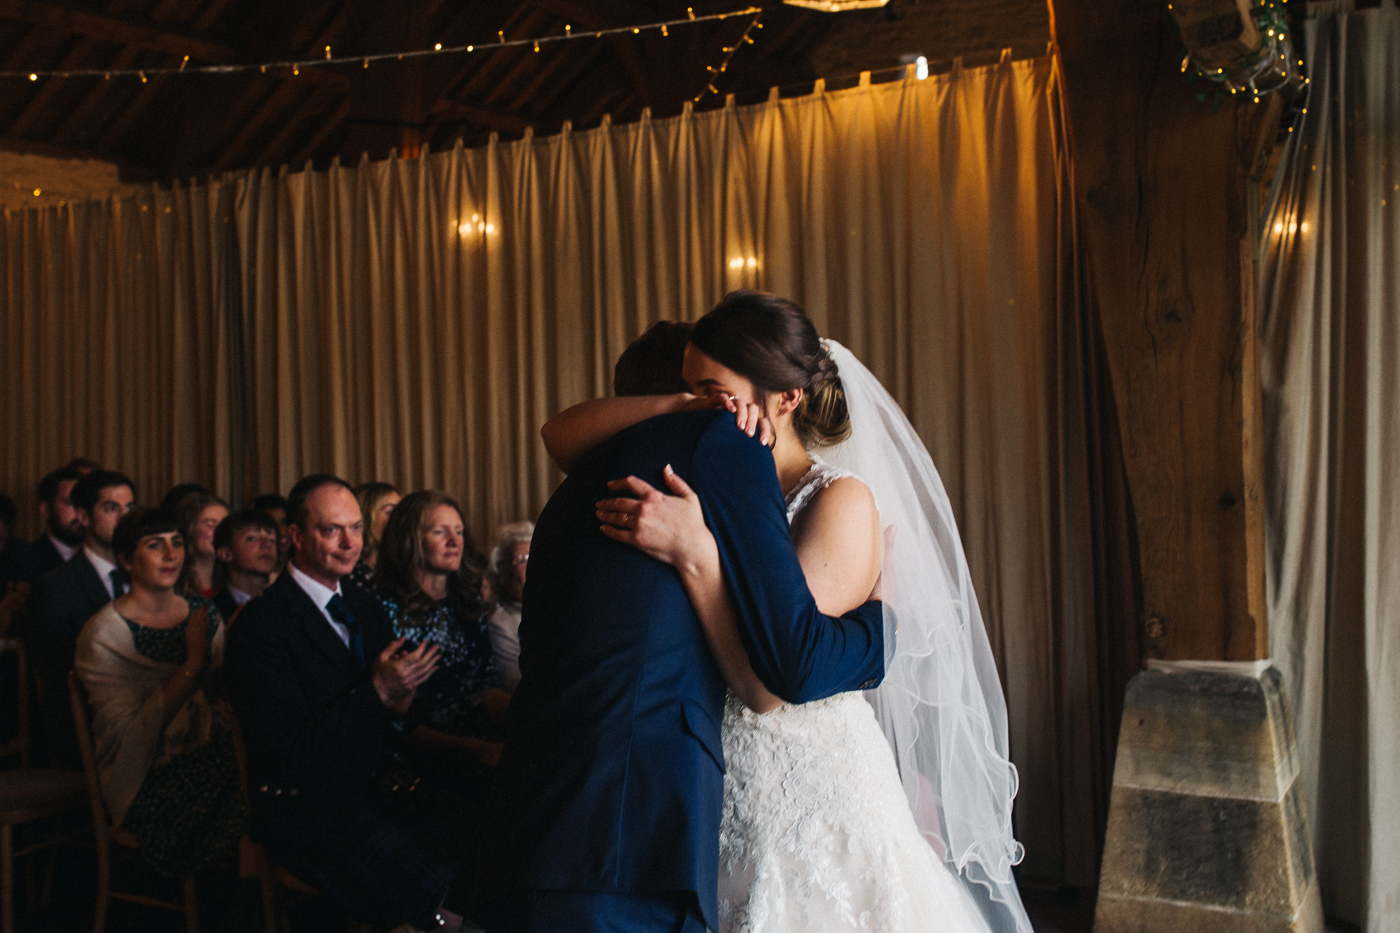 the bride and groom hug during the ceremony. spring barn wedding at east riddlesden hall keighley west yorkshire wedding photographer